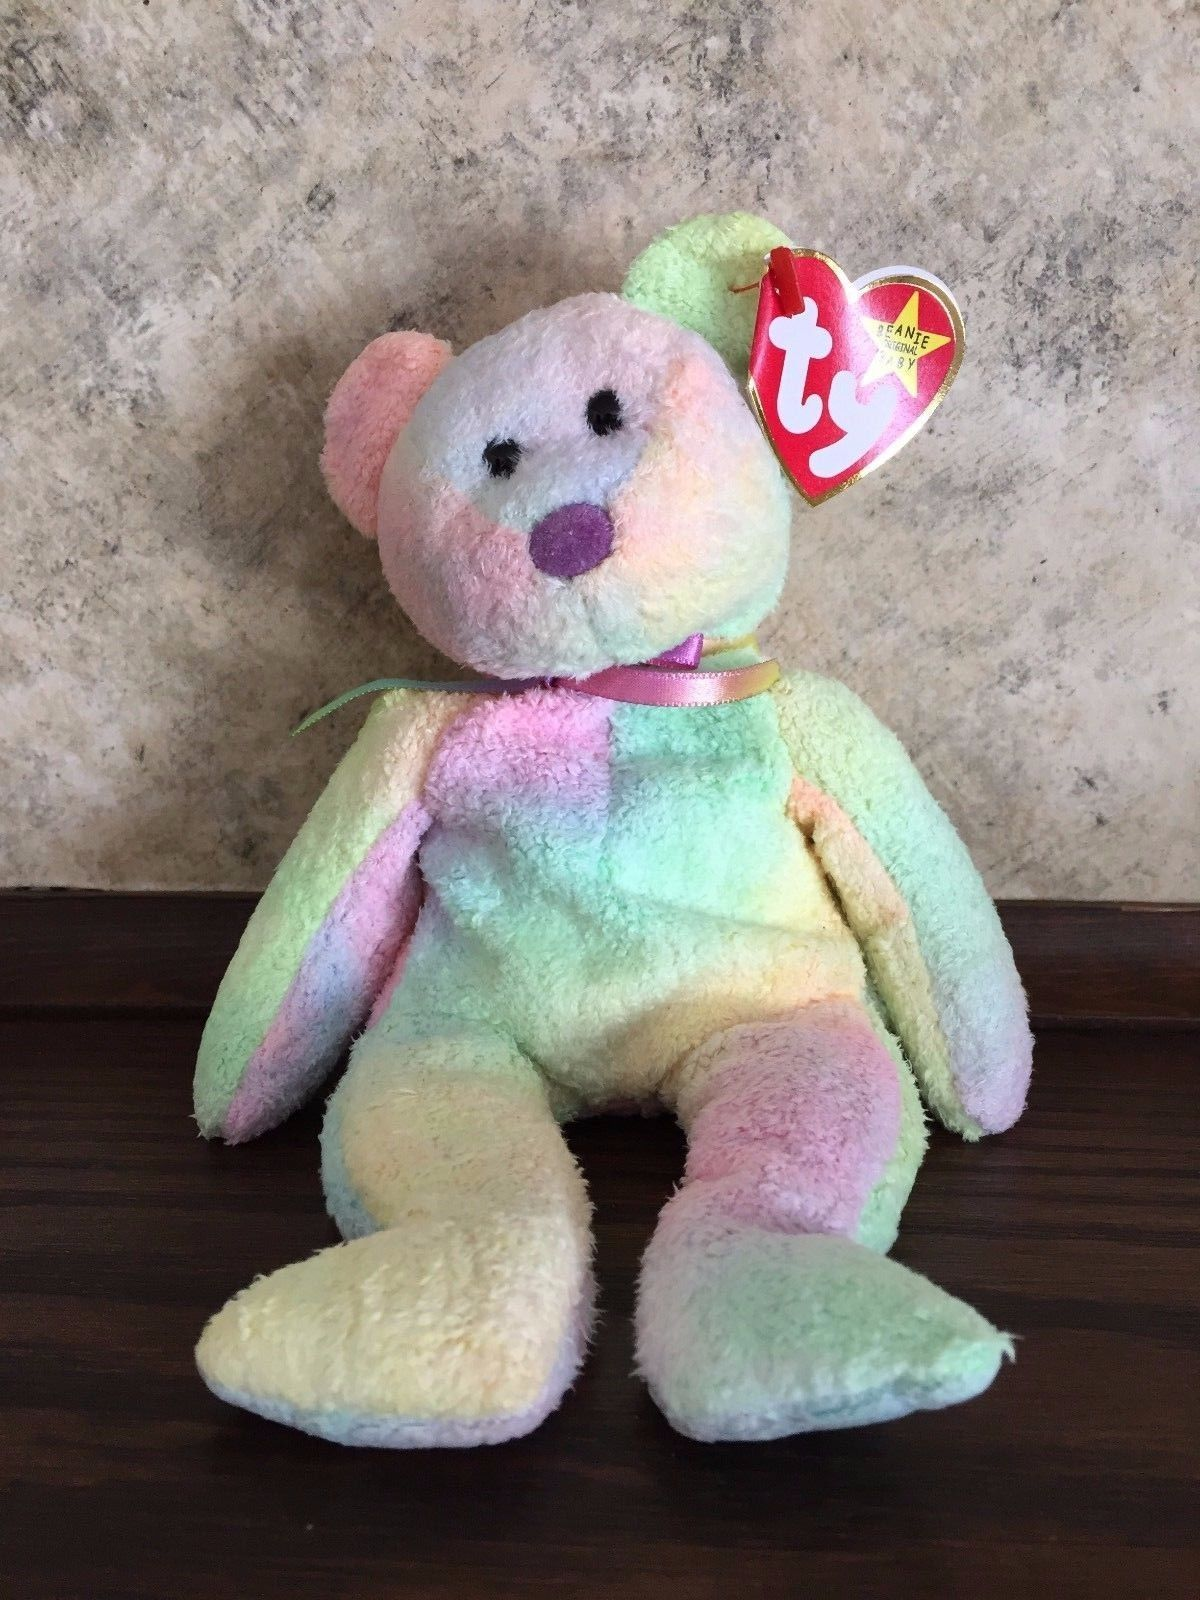 8af83494af0 TY Beanie Baby - Groovy the Bear - Born and 11 similar items. S l1600